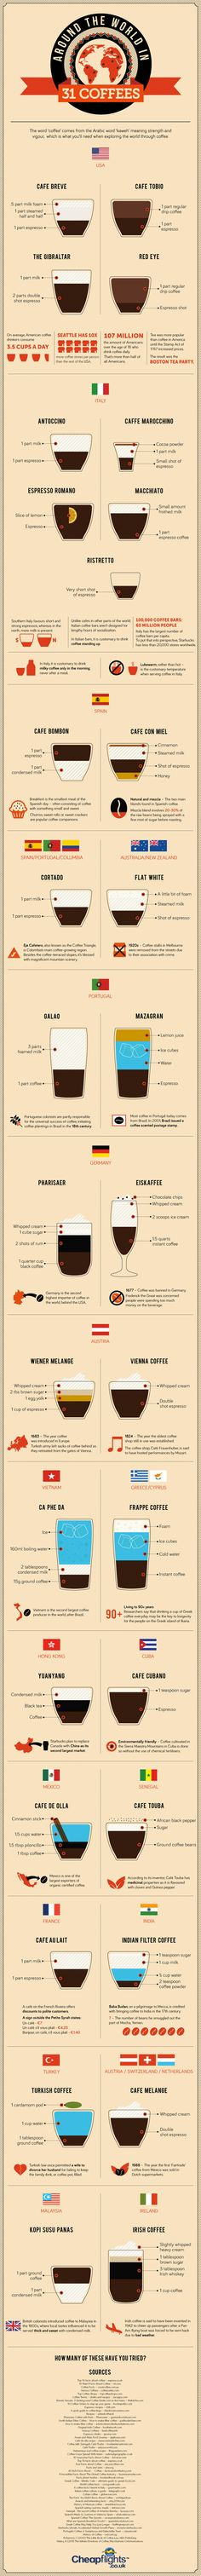 1 Different Ways Of Preparing Coffee Around The World